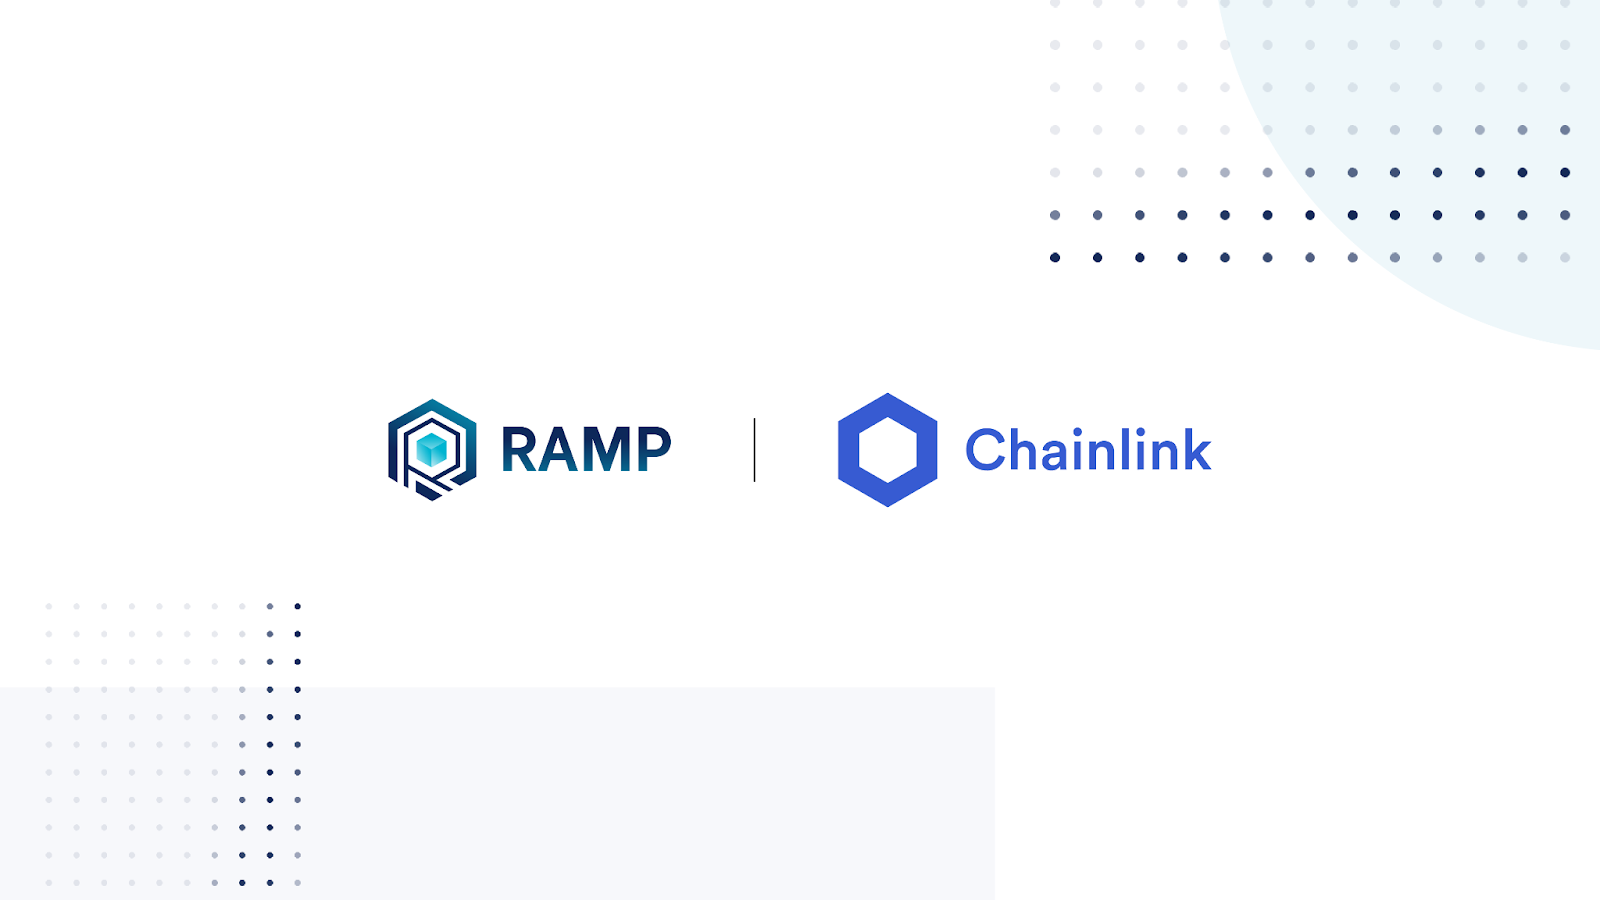 0*QiAZyTvnXYoPYglq Chainlink Adds RAMP/USD Price Oracle and Secures RAMP's Multi-Chain Staked Liquidity Platform